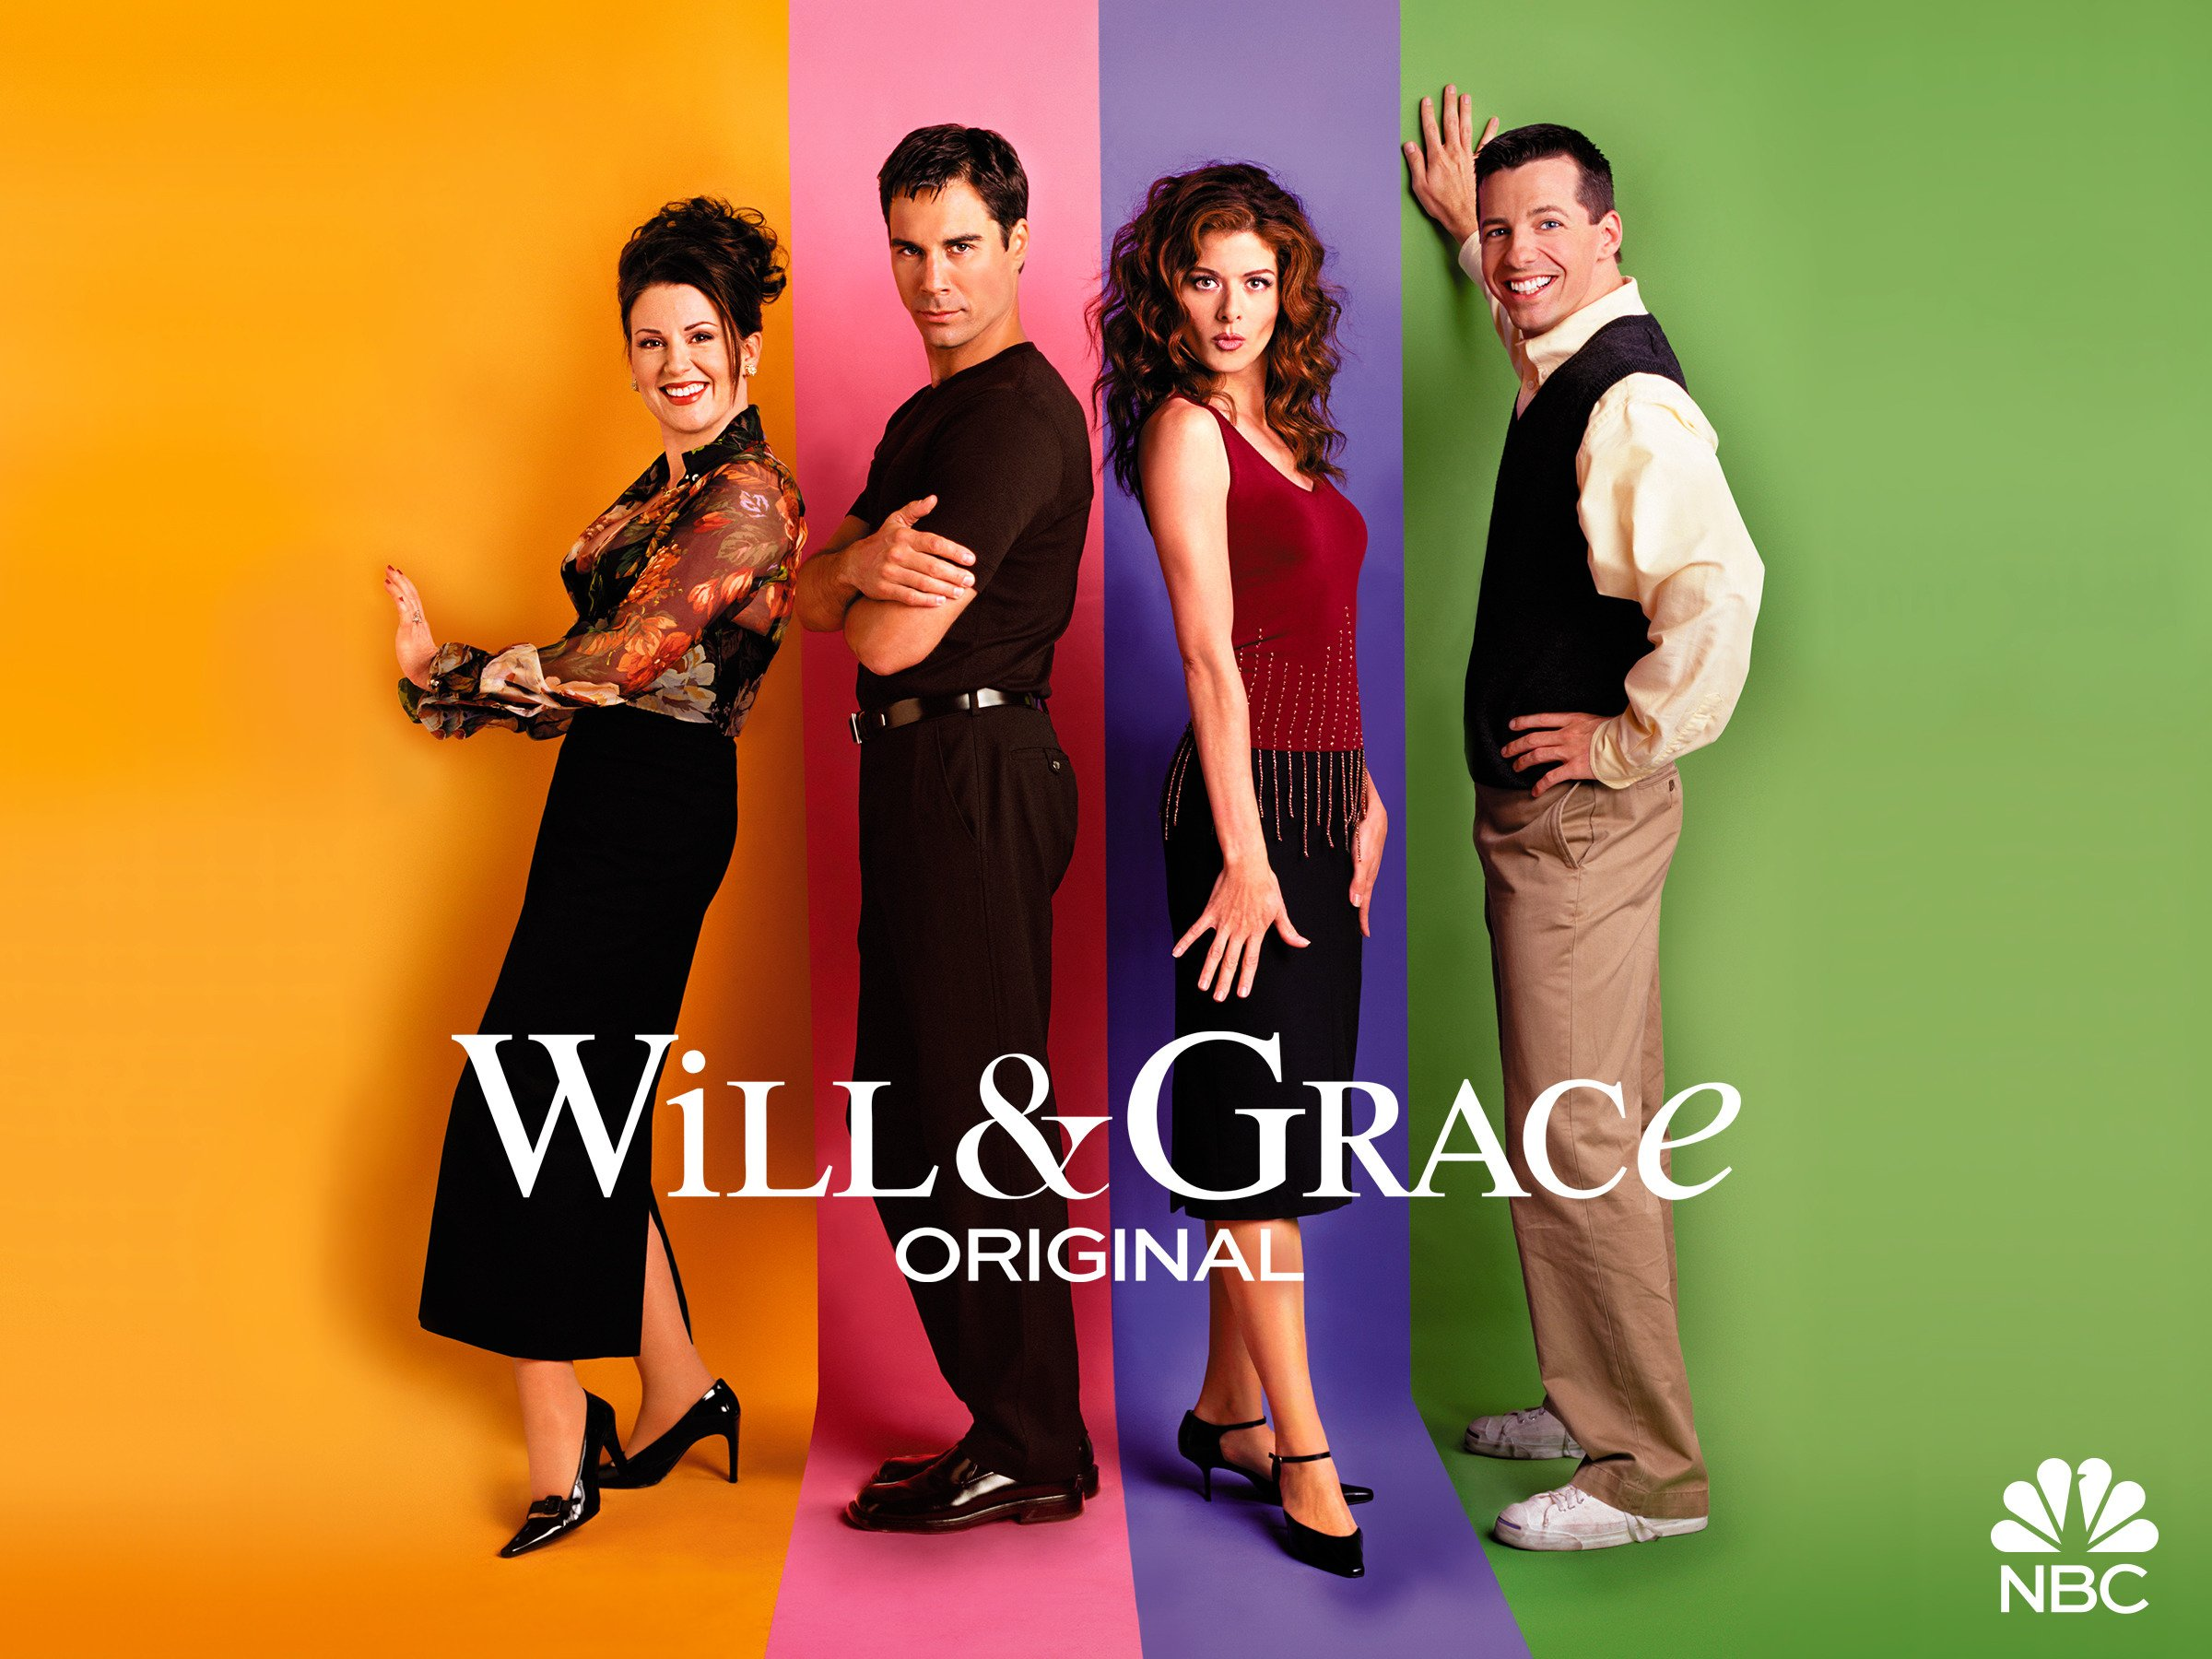 Will and grace season 9 dvd